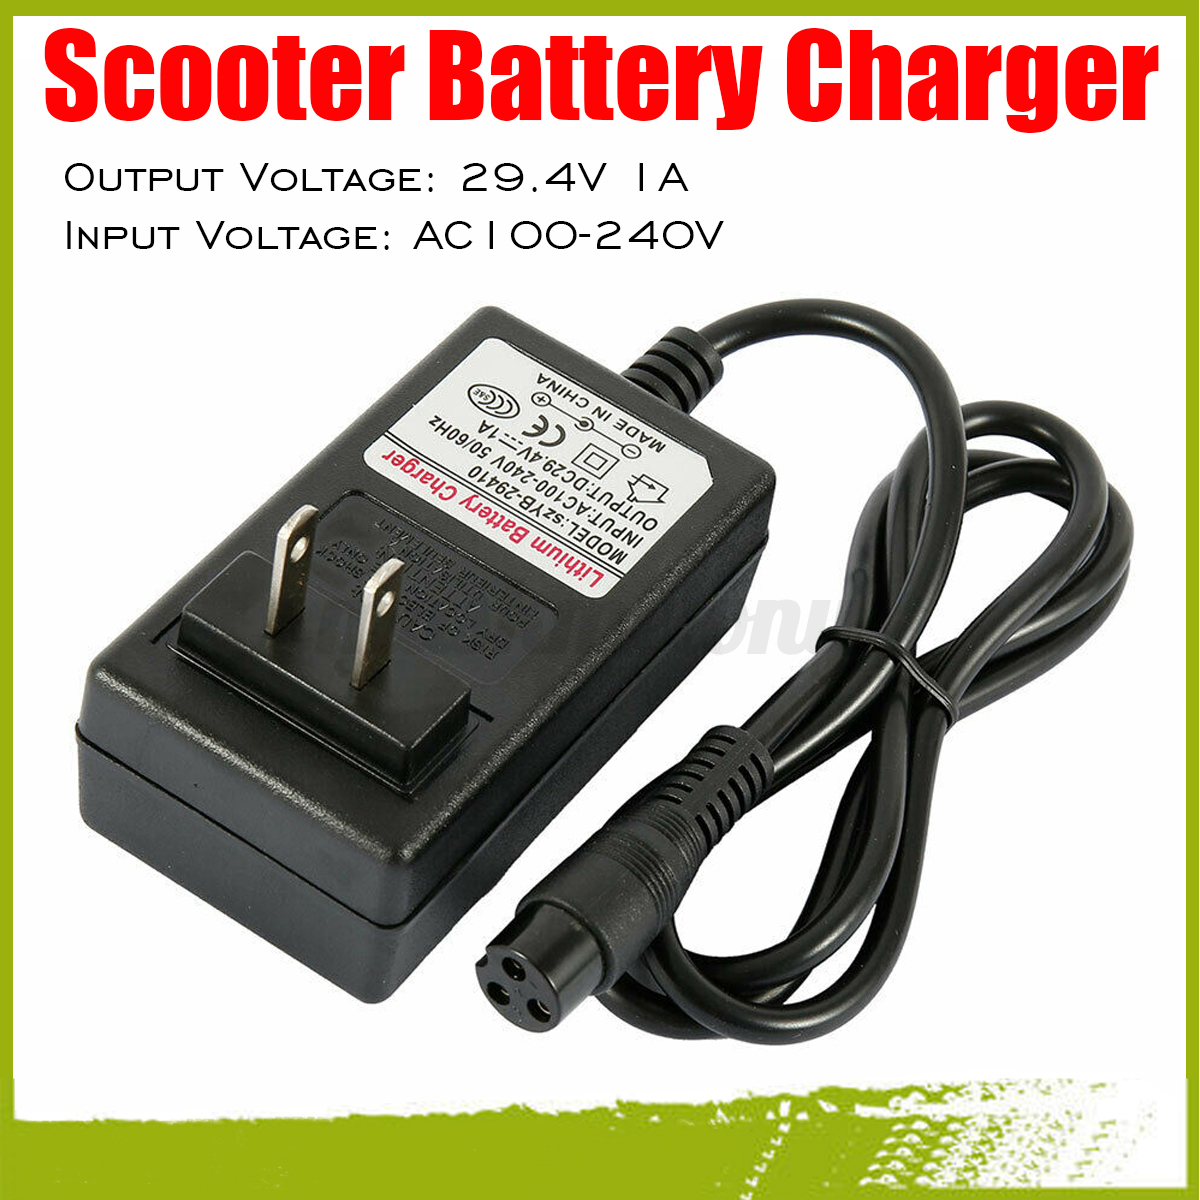 24v For Razor E100 E125 E150 Electric Scooter Battery